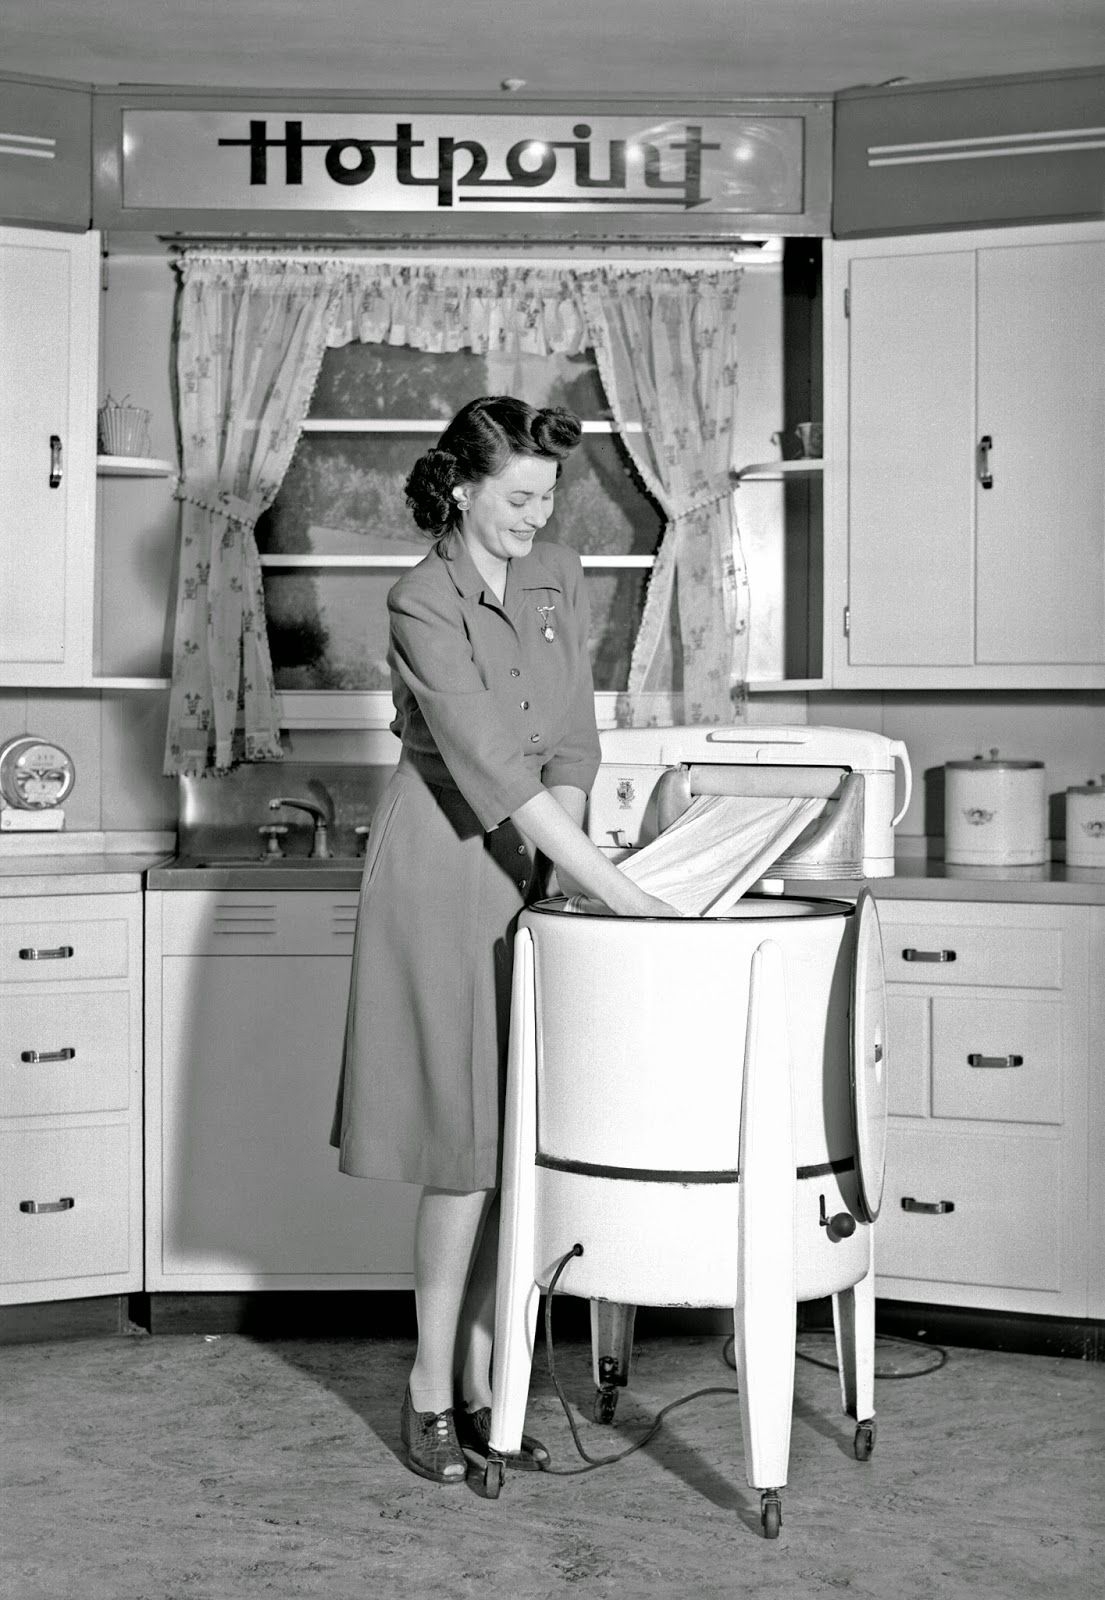 A Woman Demonstrates A Hotpoint Wringer Washing Machine